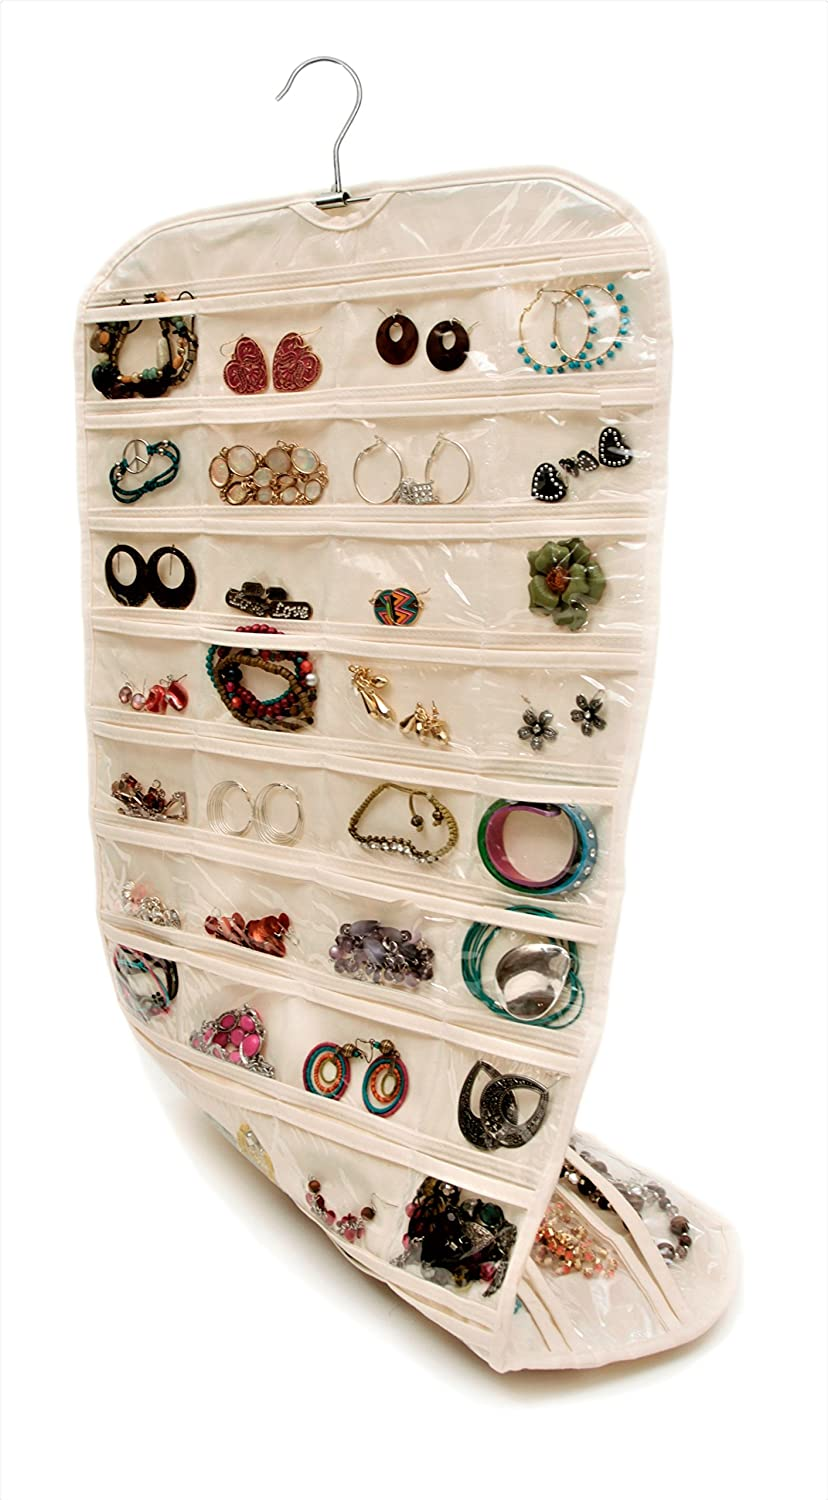 Amazoncom Closet Complete Premium Quality CANVAS Hanging Jewelry